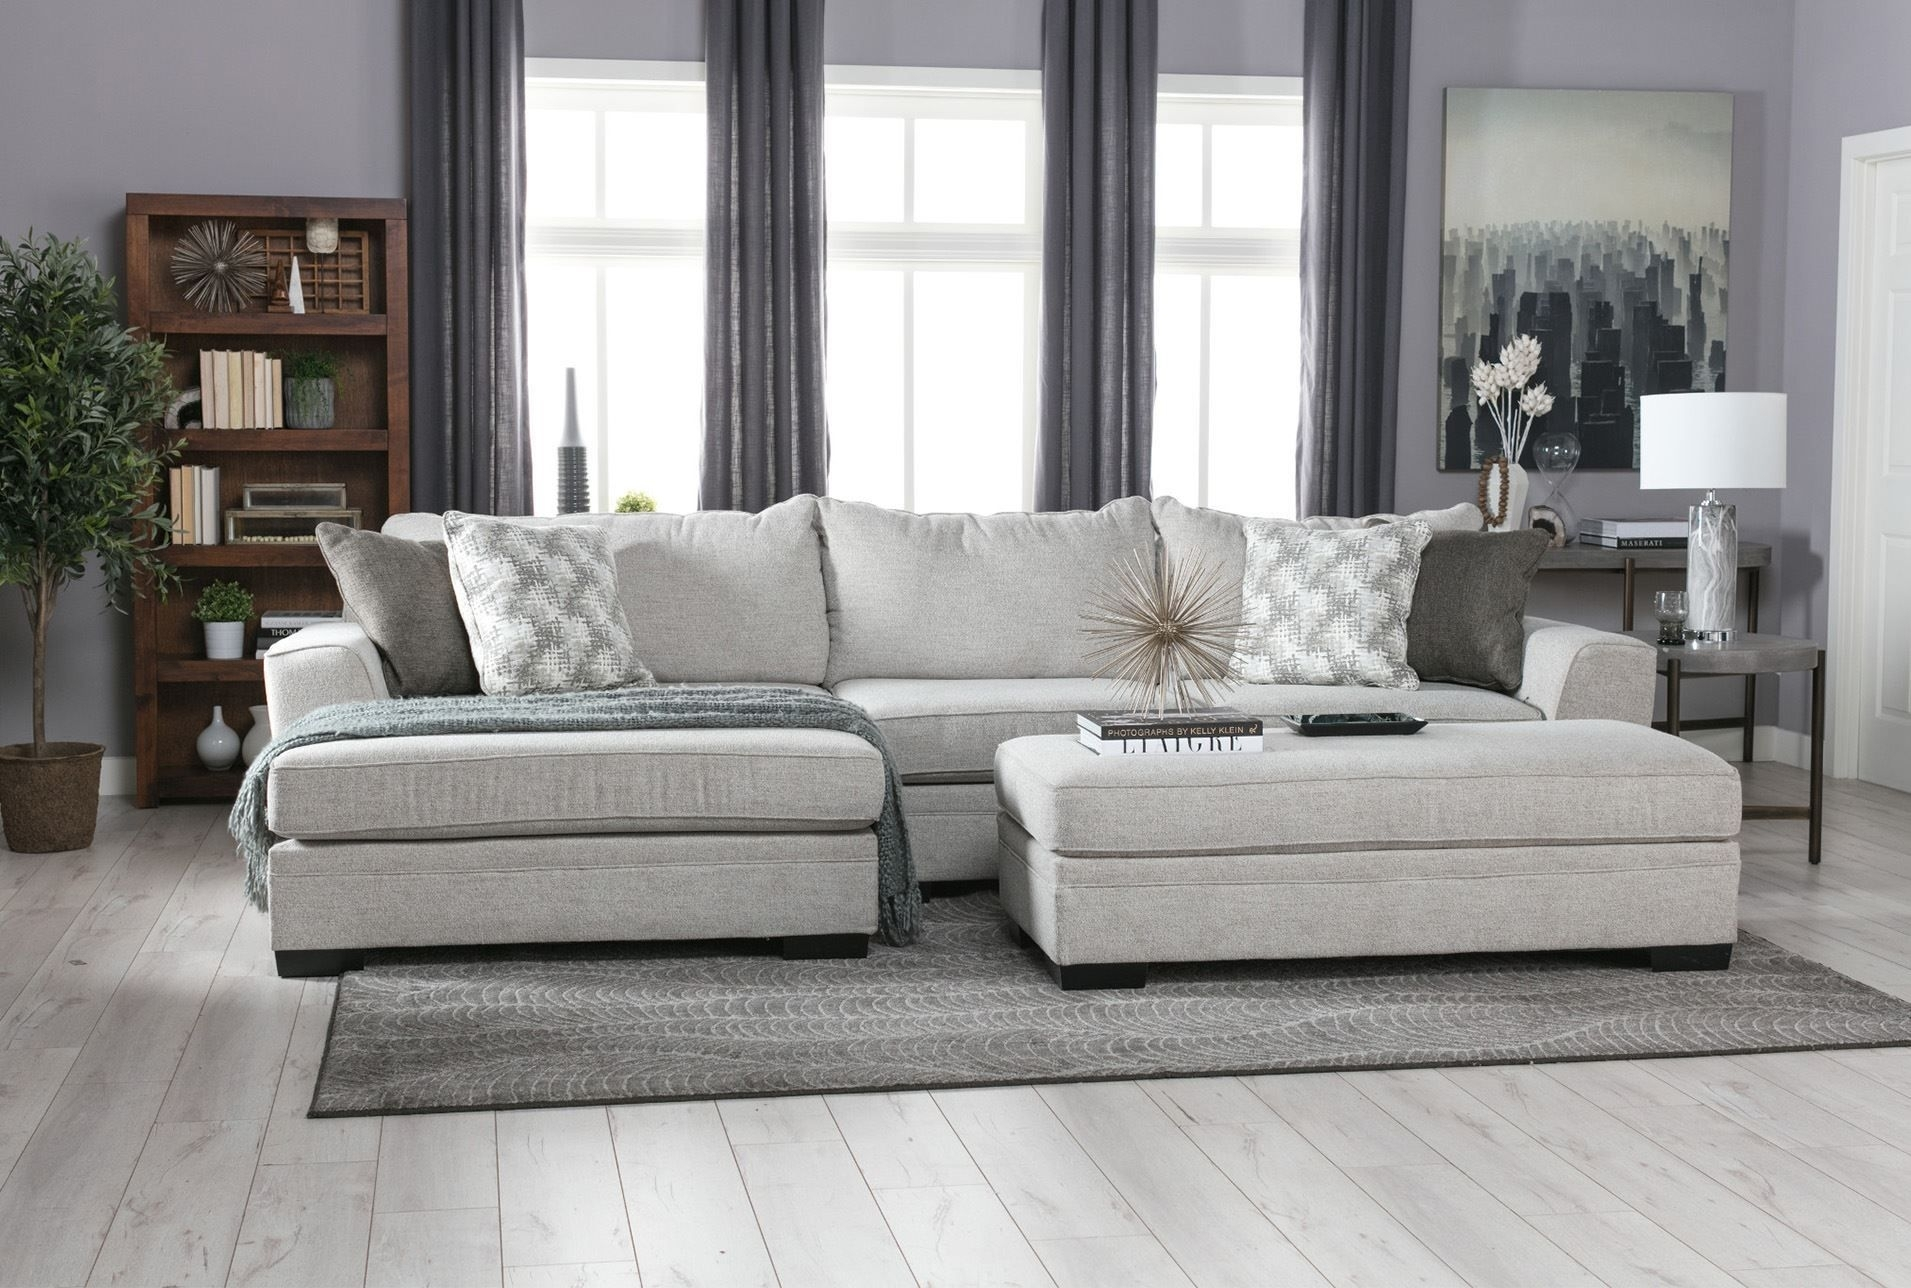 Delano 2 Piece Sectional W/laf Oversized Chaise | Sylvia Son With Haven Blue Steel 3 Piece Sectionals (Image 8 of 25)